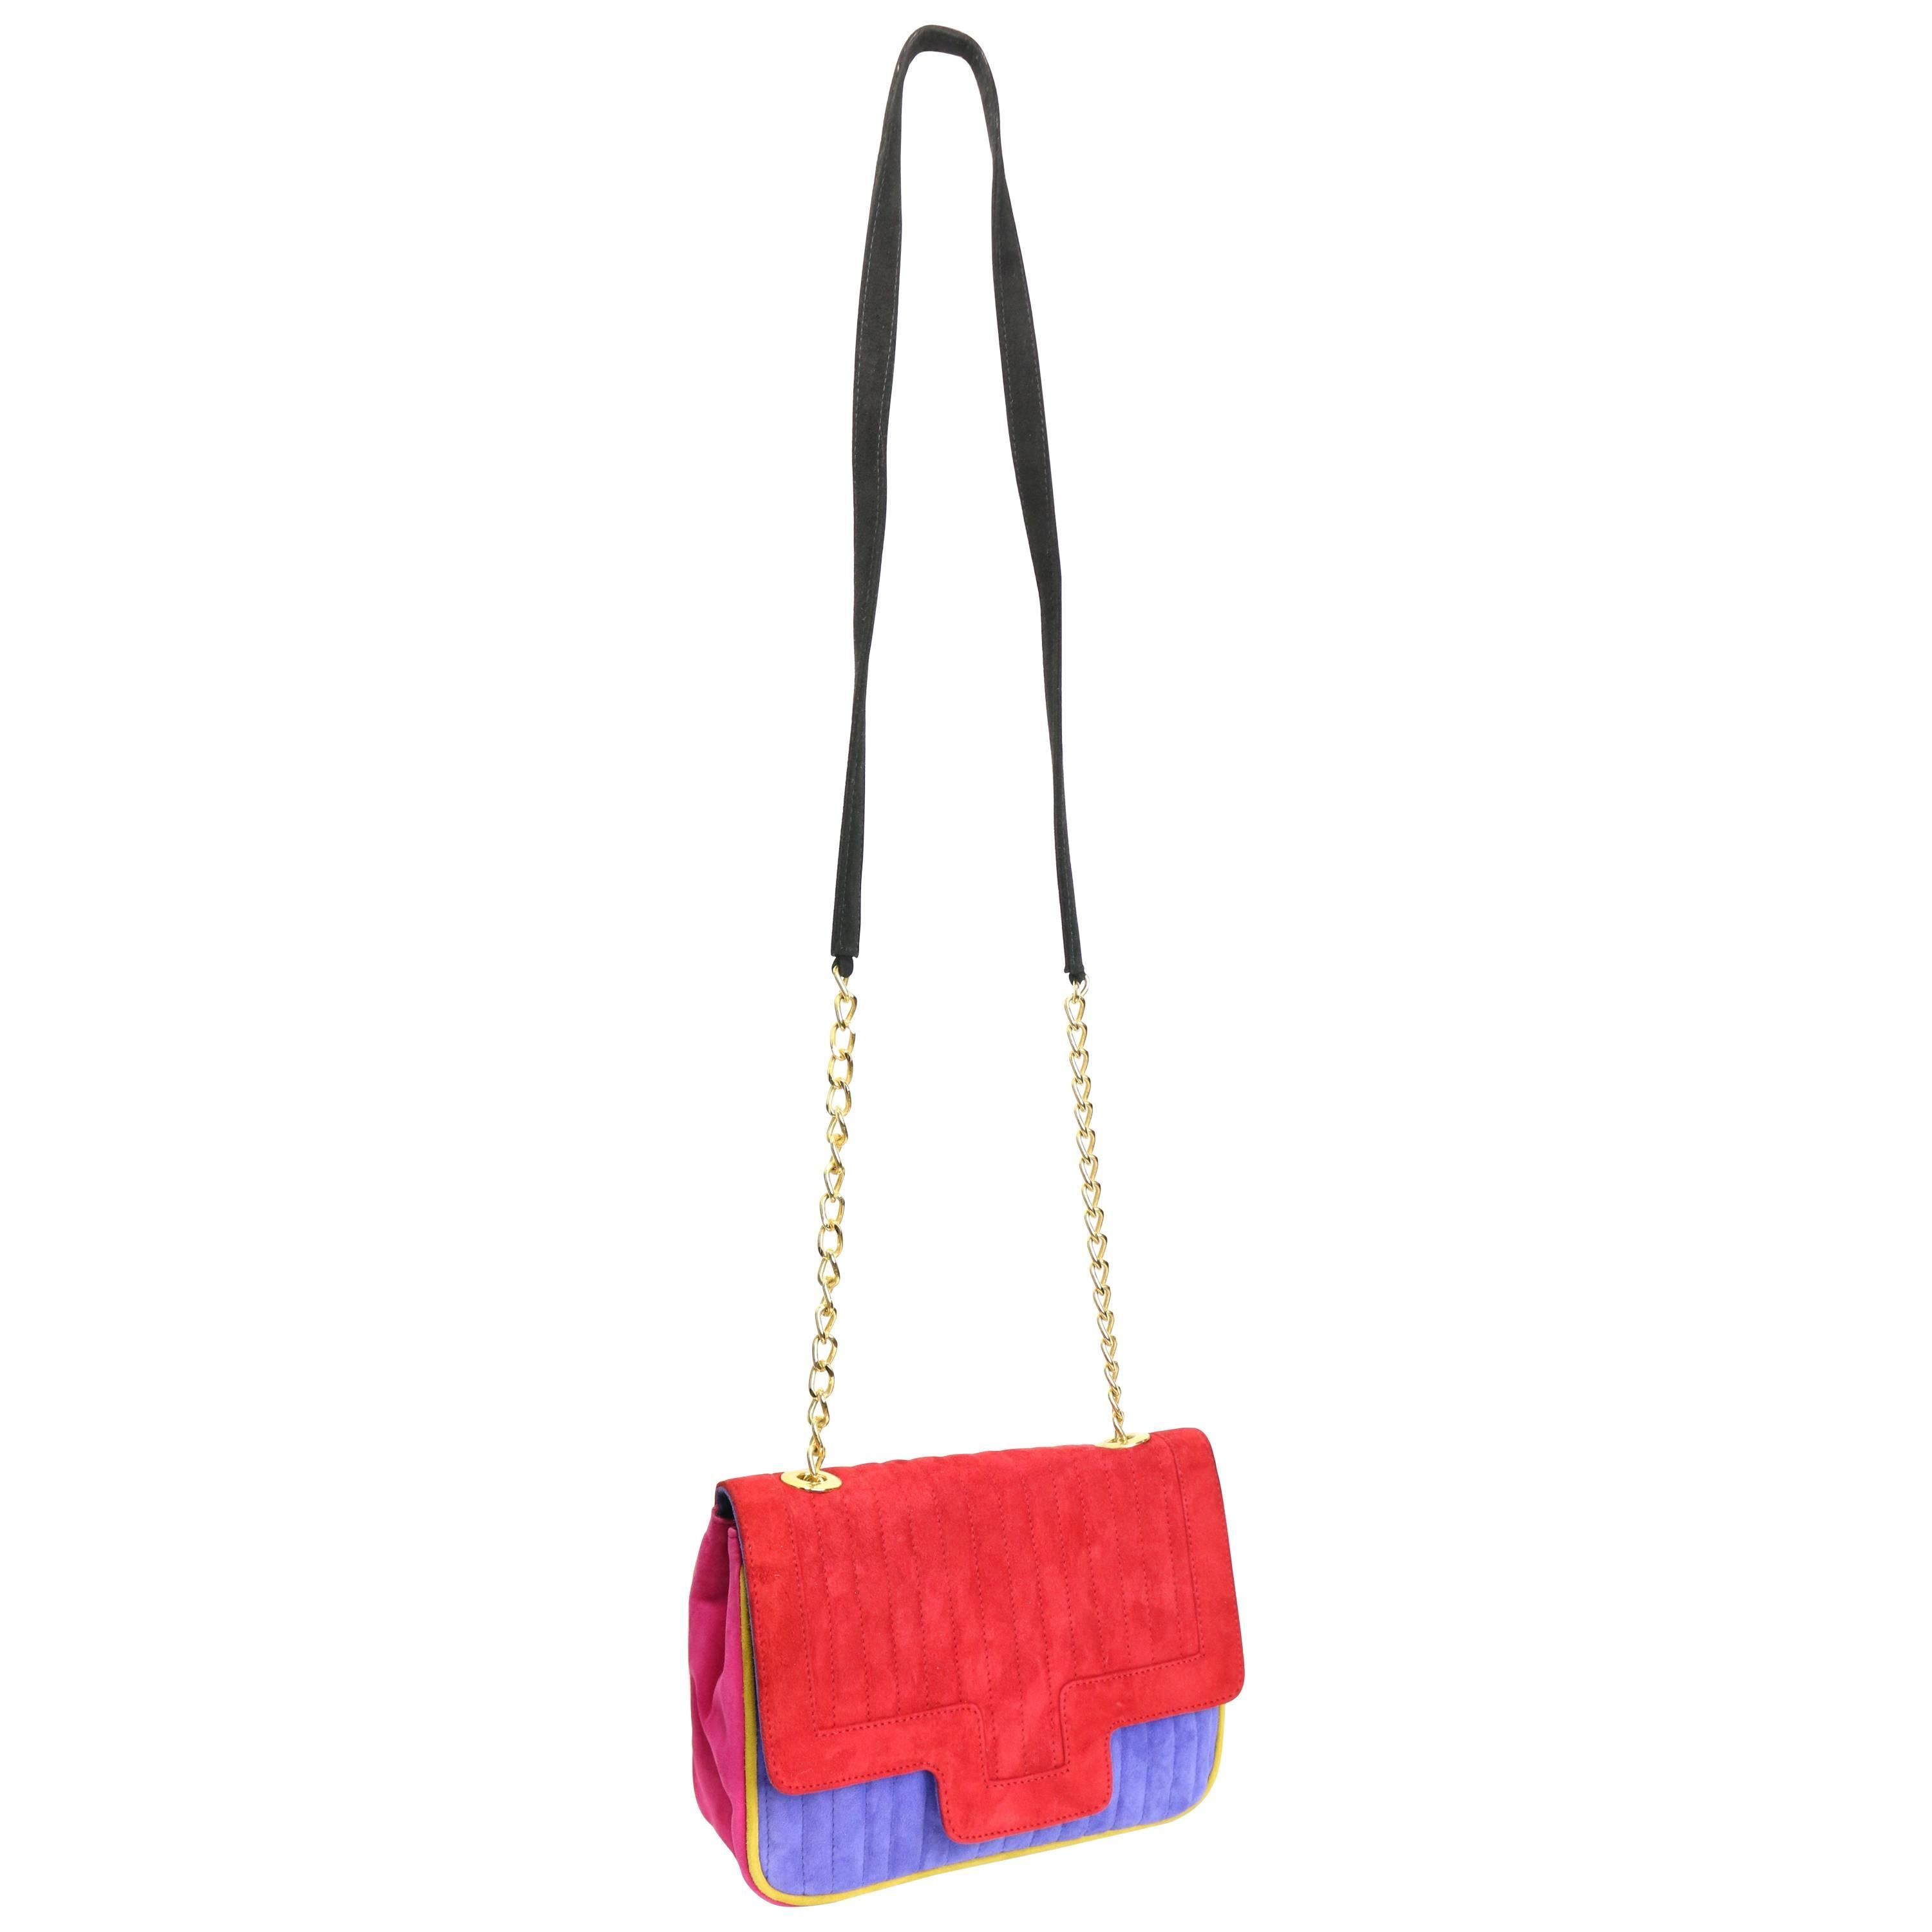 1stdibs Pancaldi Colour Blocked Suede Flap Shoulder Bag lNcFM6